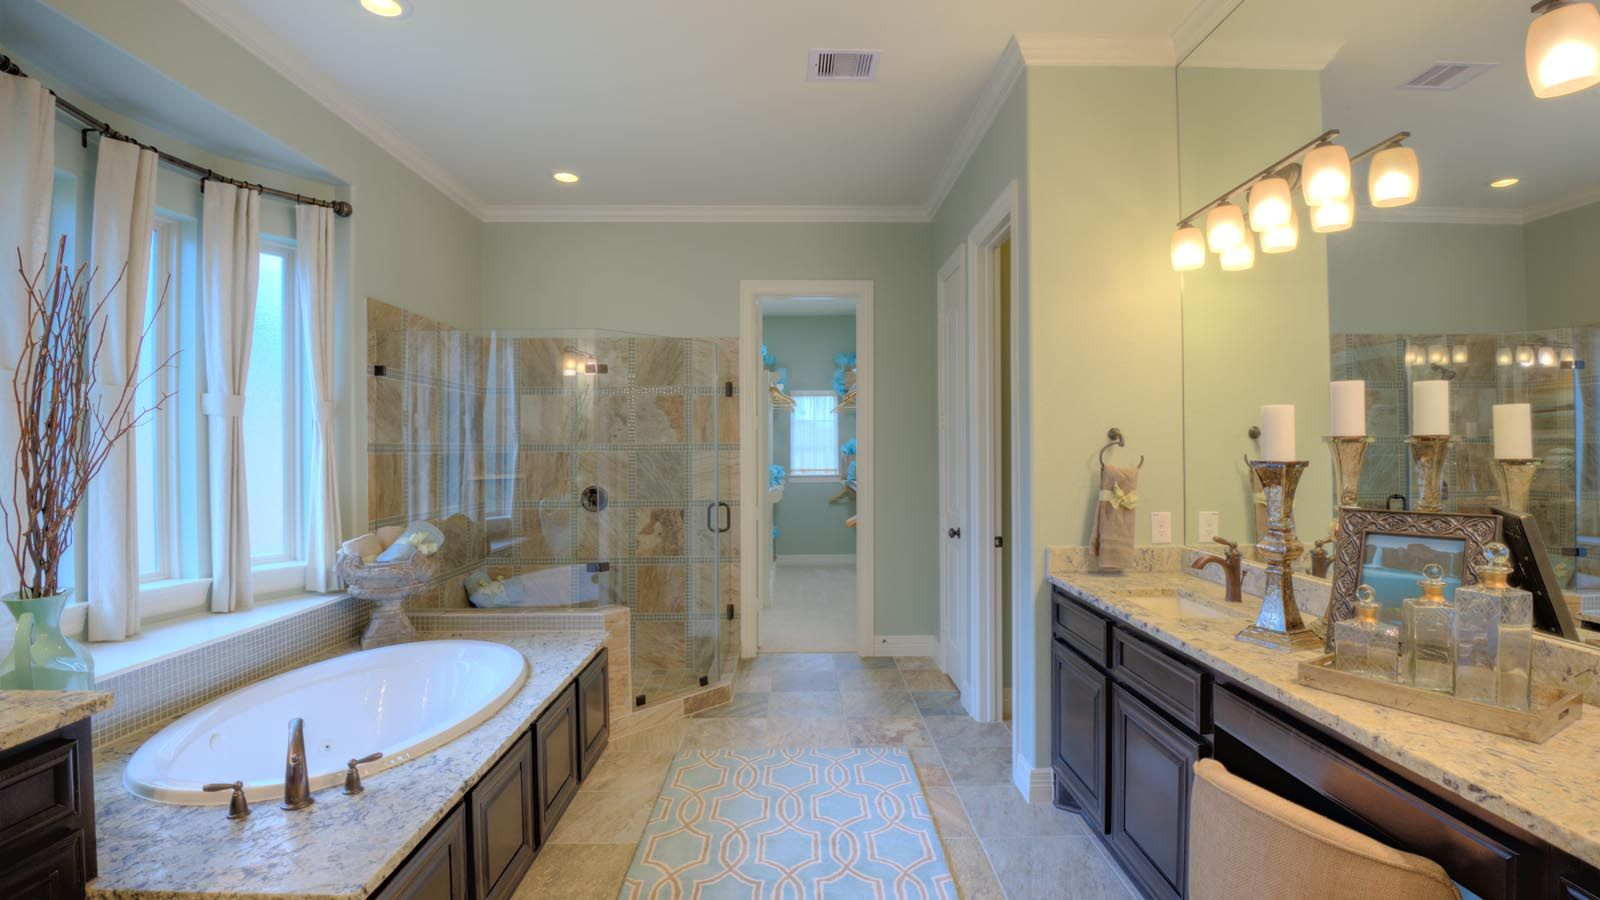 Bathroom featured in the Milano Plan By Taylor Morrison in Houston, TX